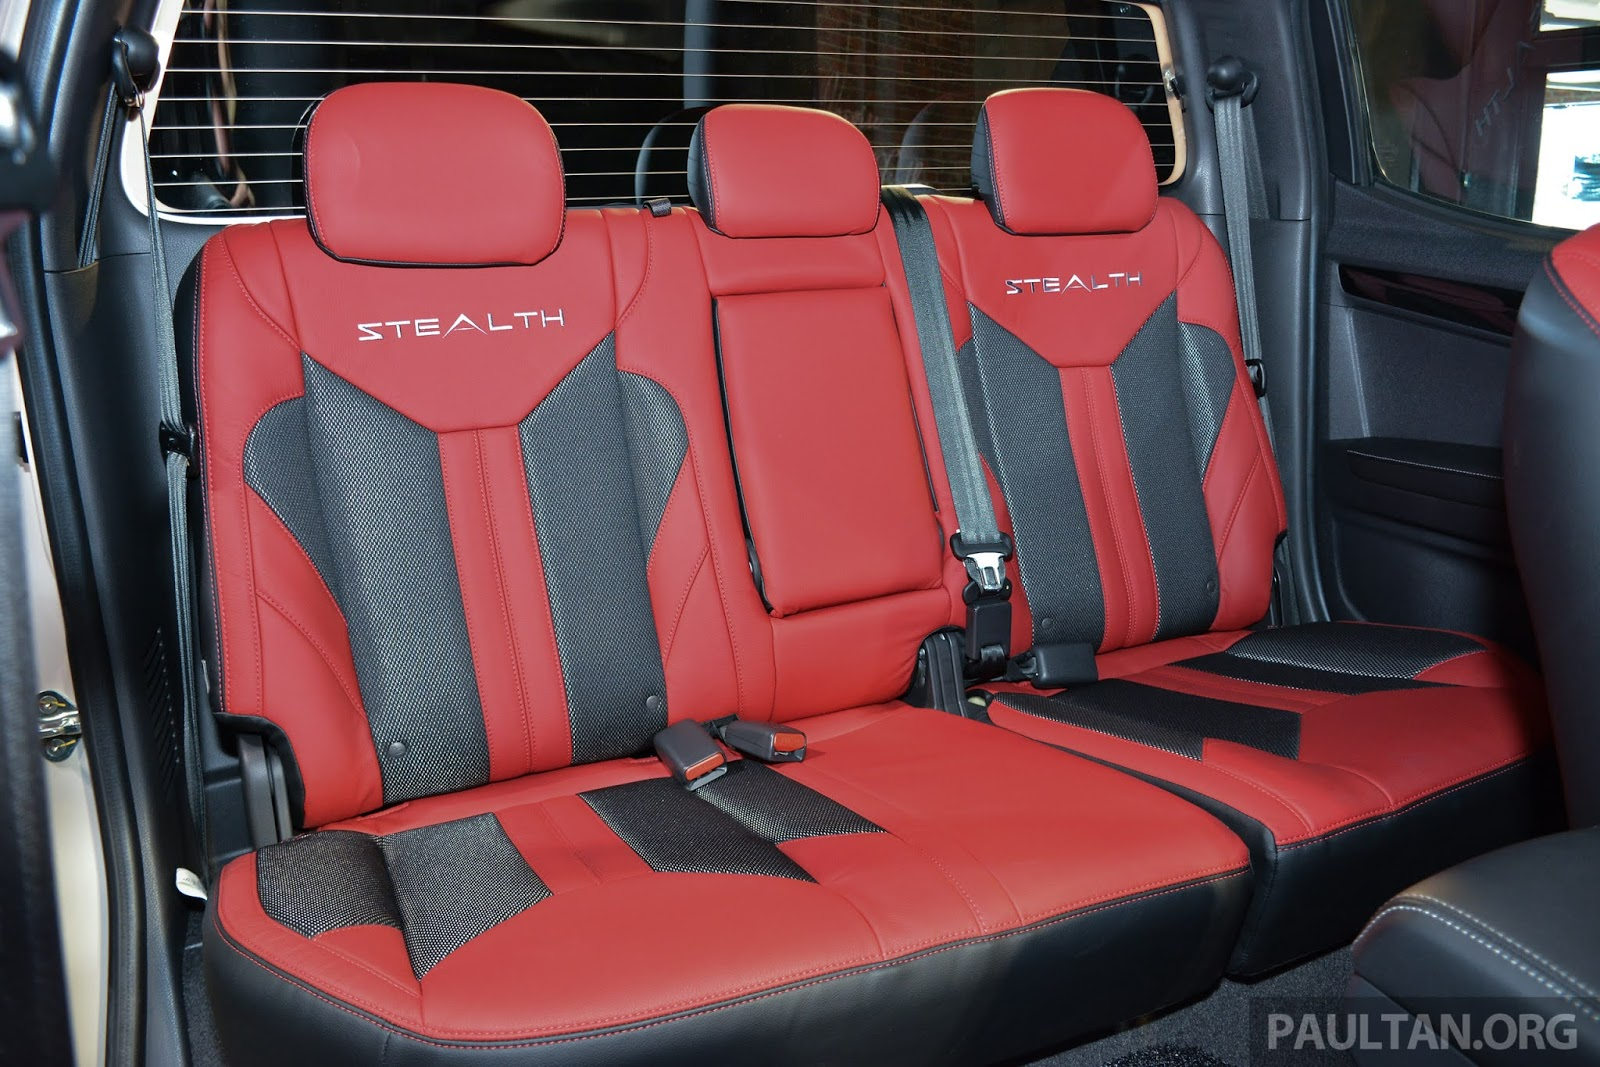 New Isuzu D-MAX Stealth Edition seats